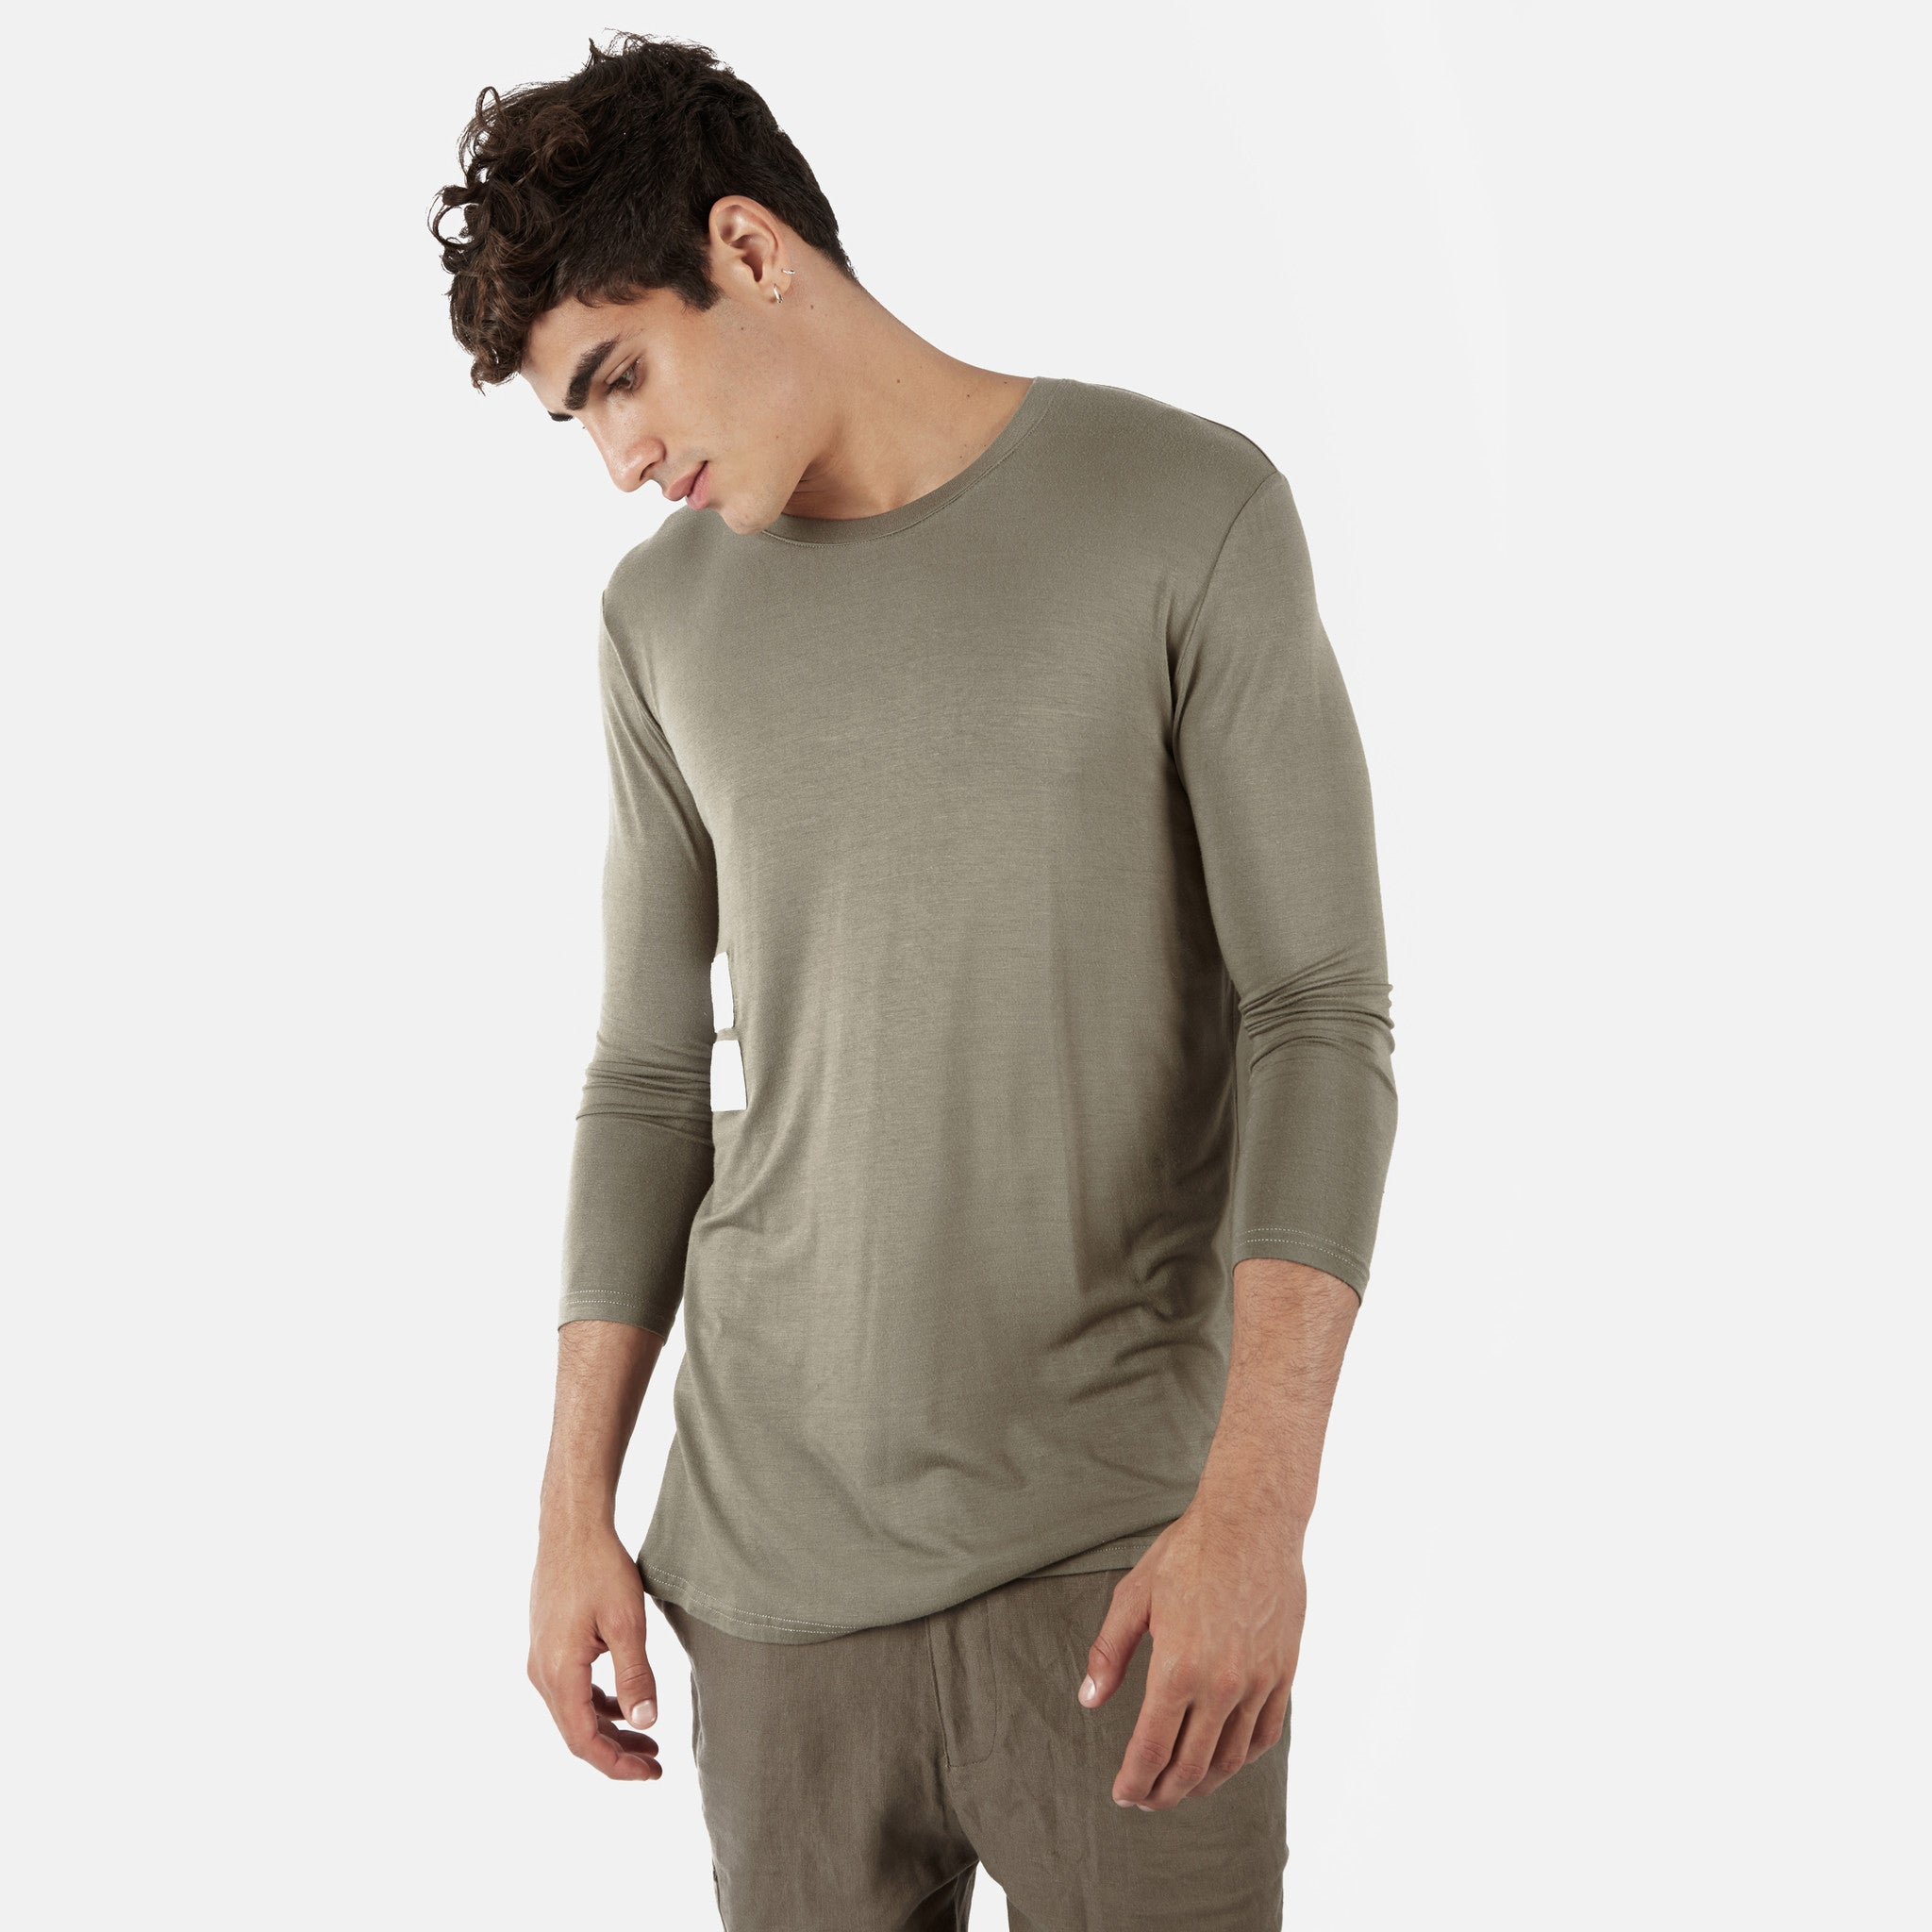 2 Pack Under Layer 3/4 Sleeve Tee - Khaki/Beige - underated london - underatedco - 2